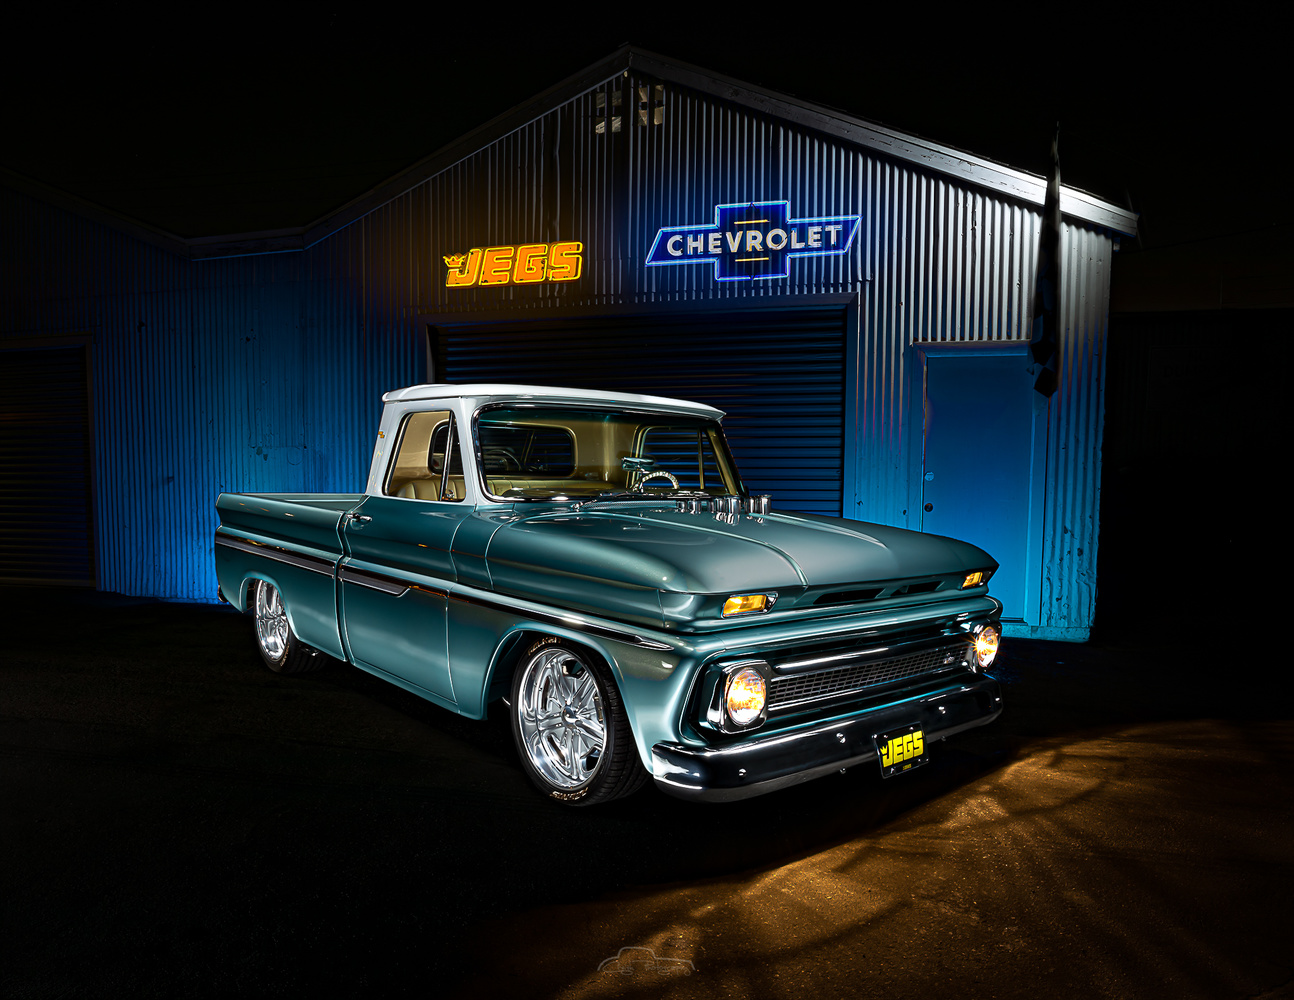 Jegs Chevy C10 by Creigh McIntyre